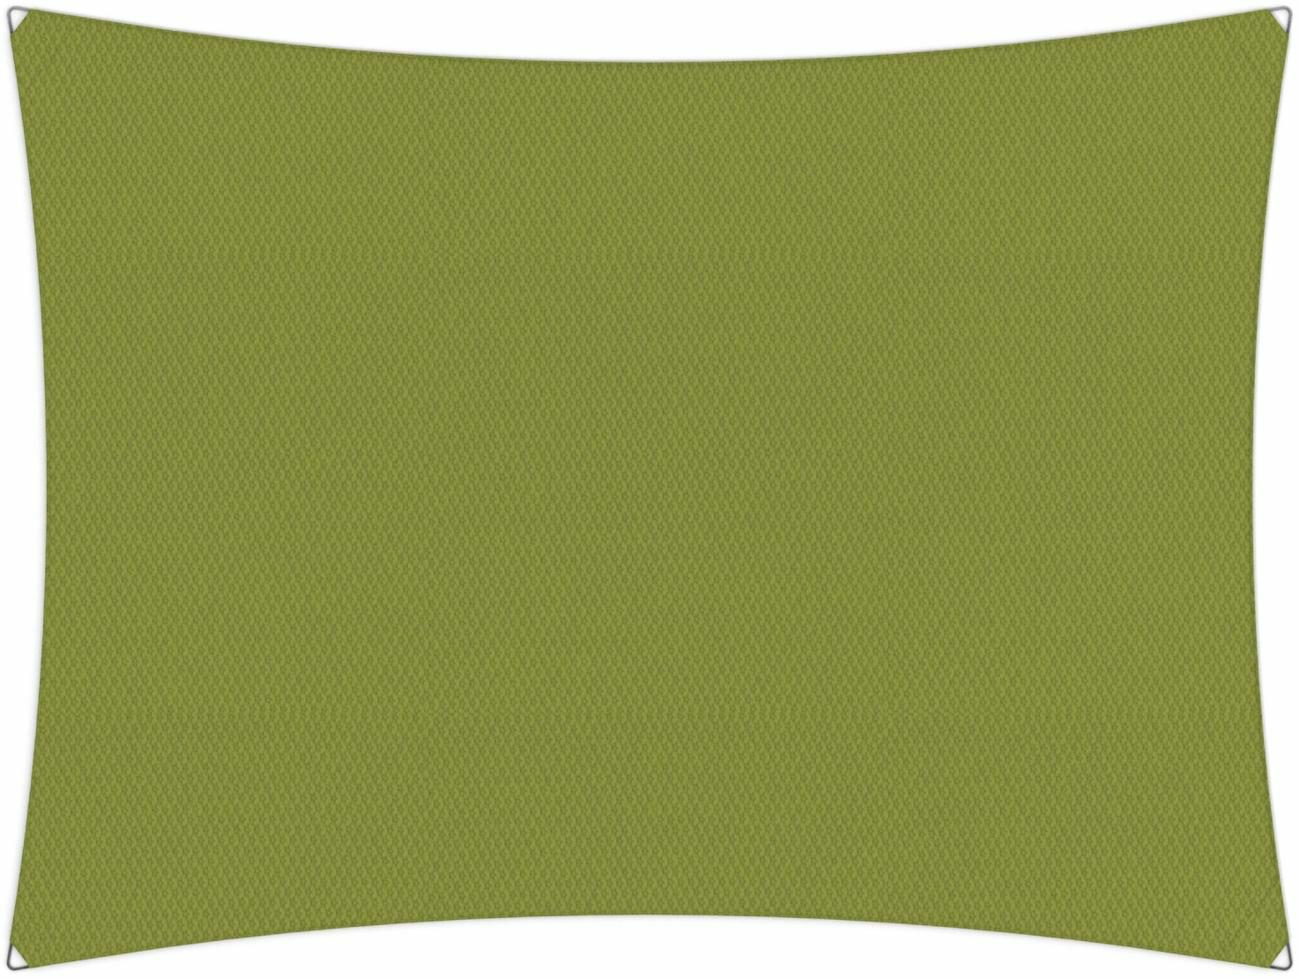 Ingenua shade sail Rectangle 4 x 3 m, for outdoor use. Colour of the fabric shade sail Lichen.